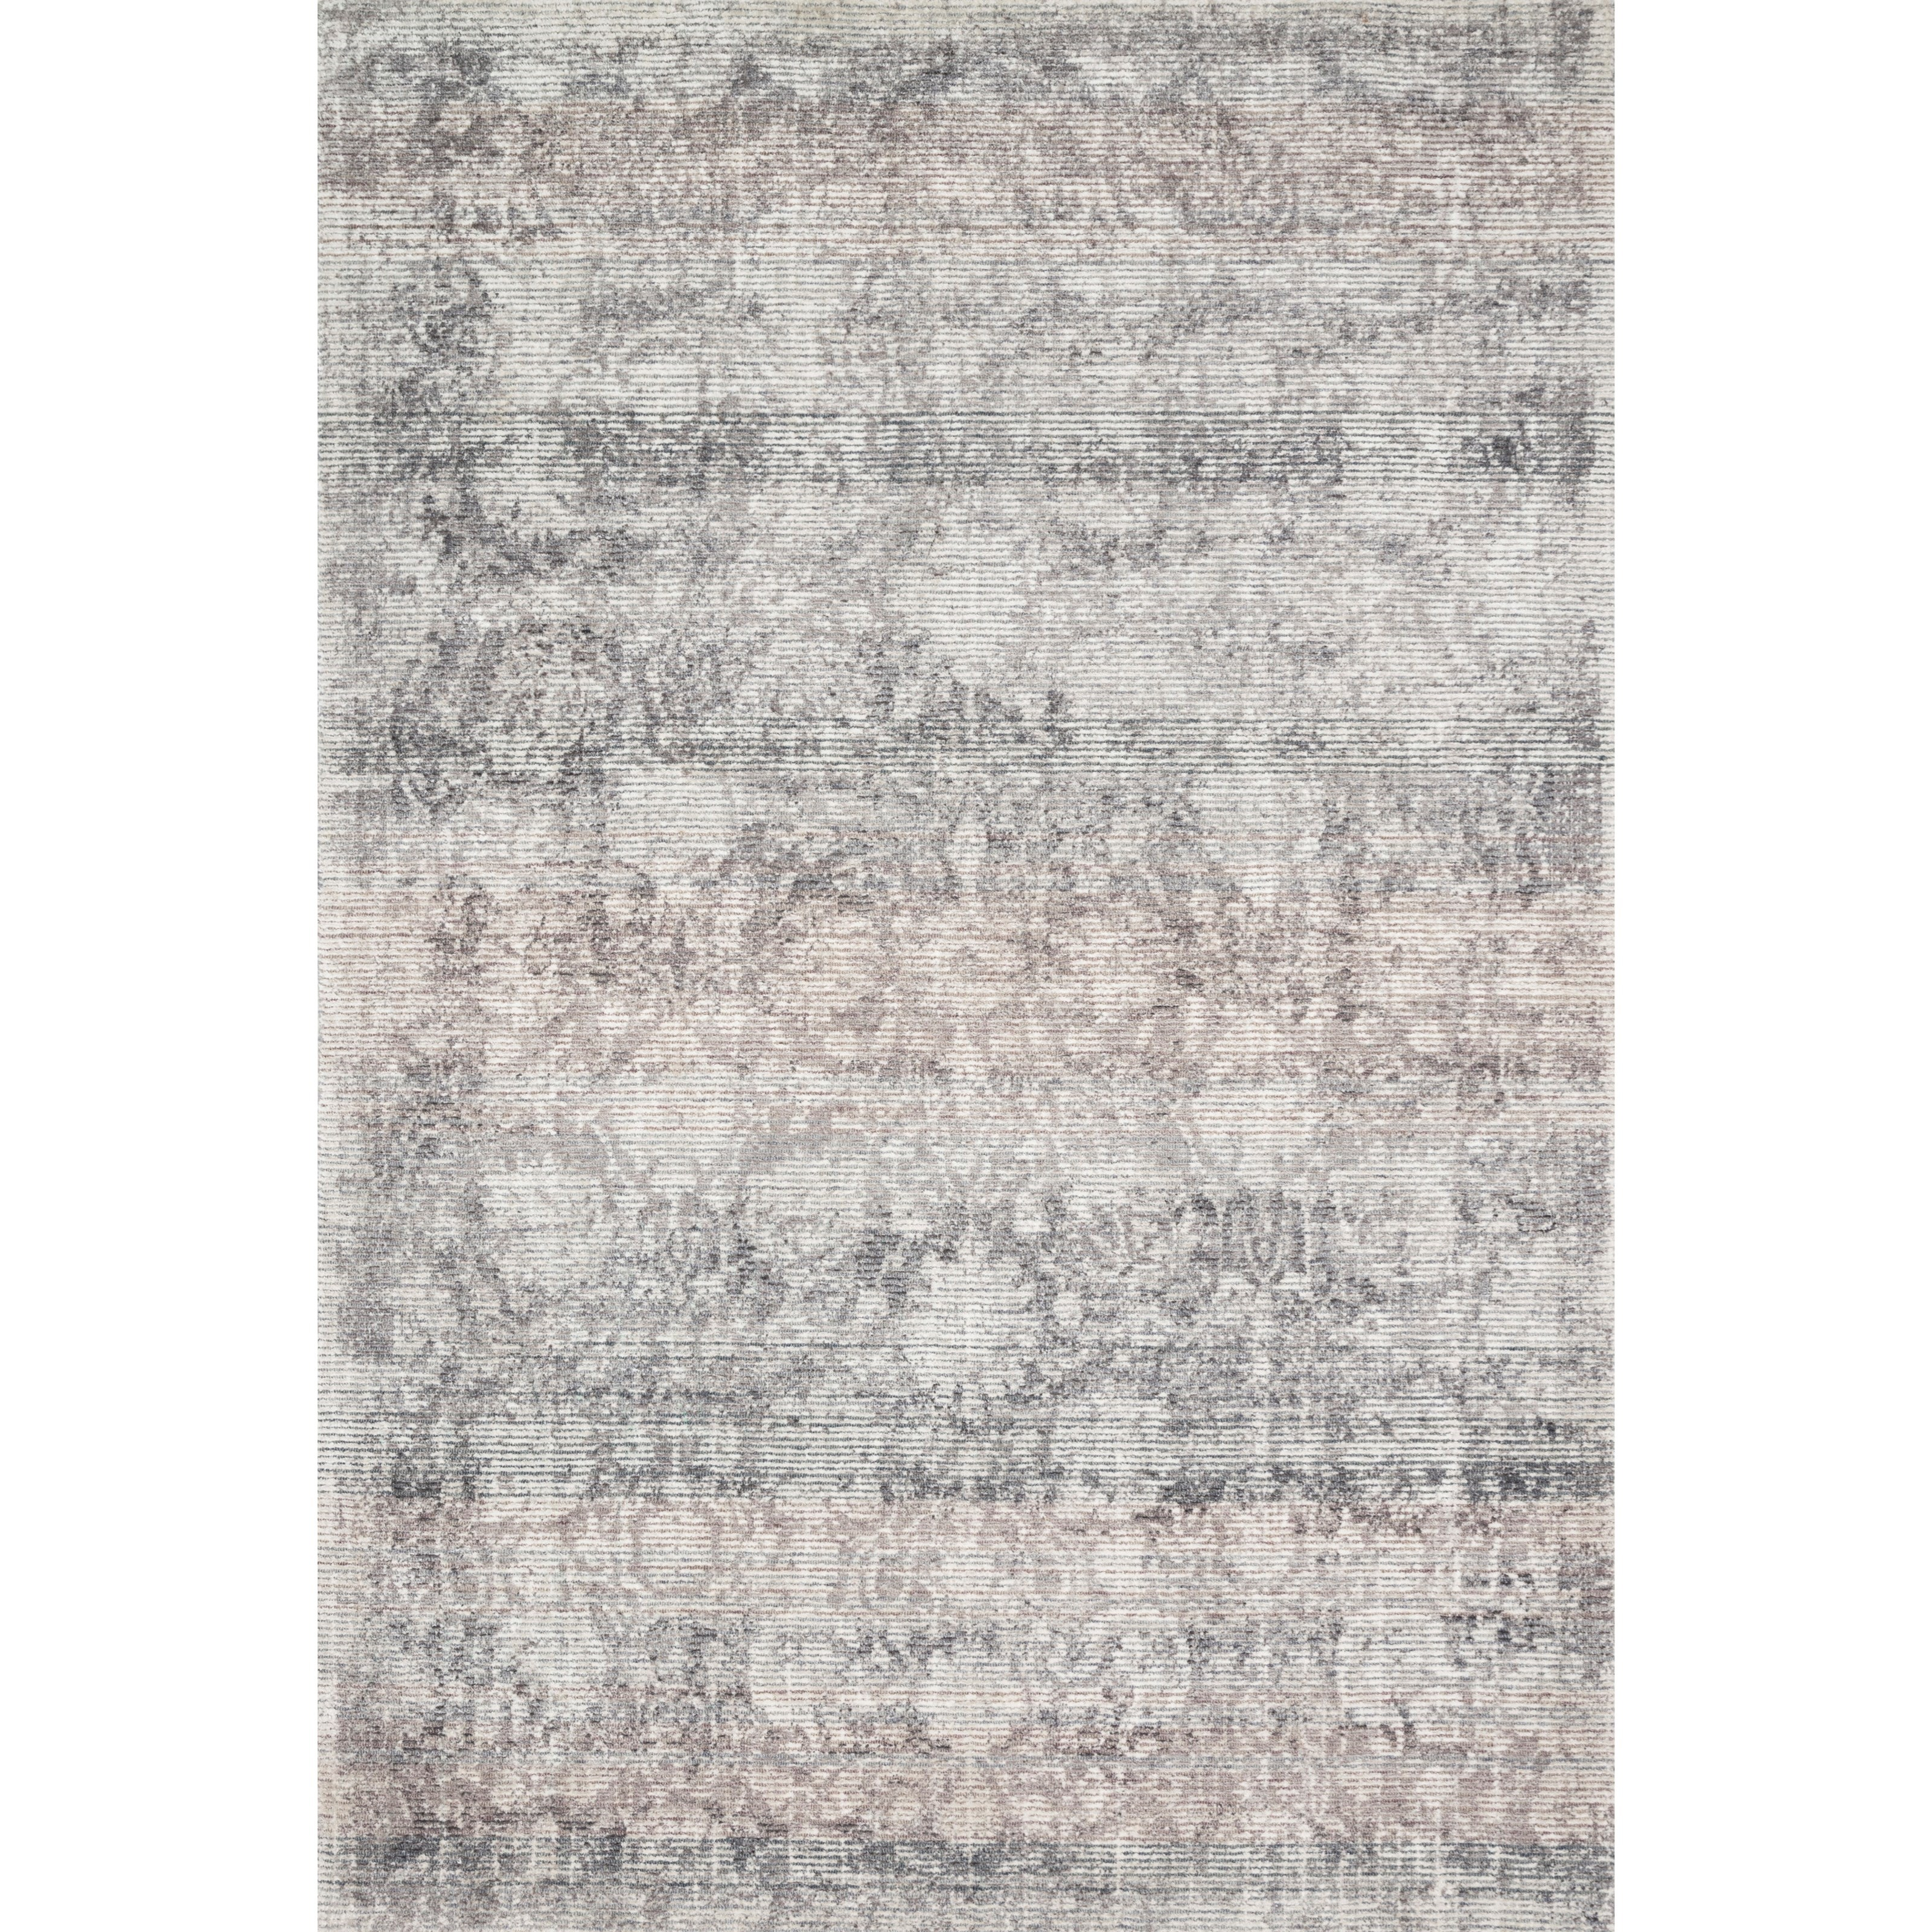 """Rumi 3'6"""" x 5'6"""" Pewter Rug by Loloi Rugs at Virginia Furniture Market"""